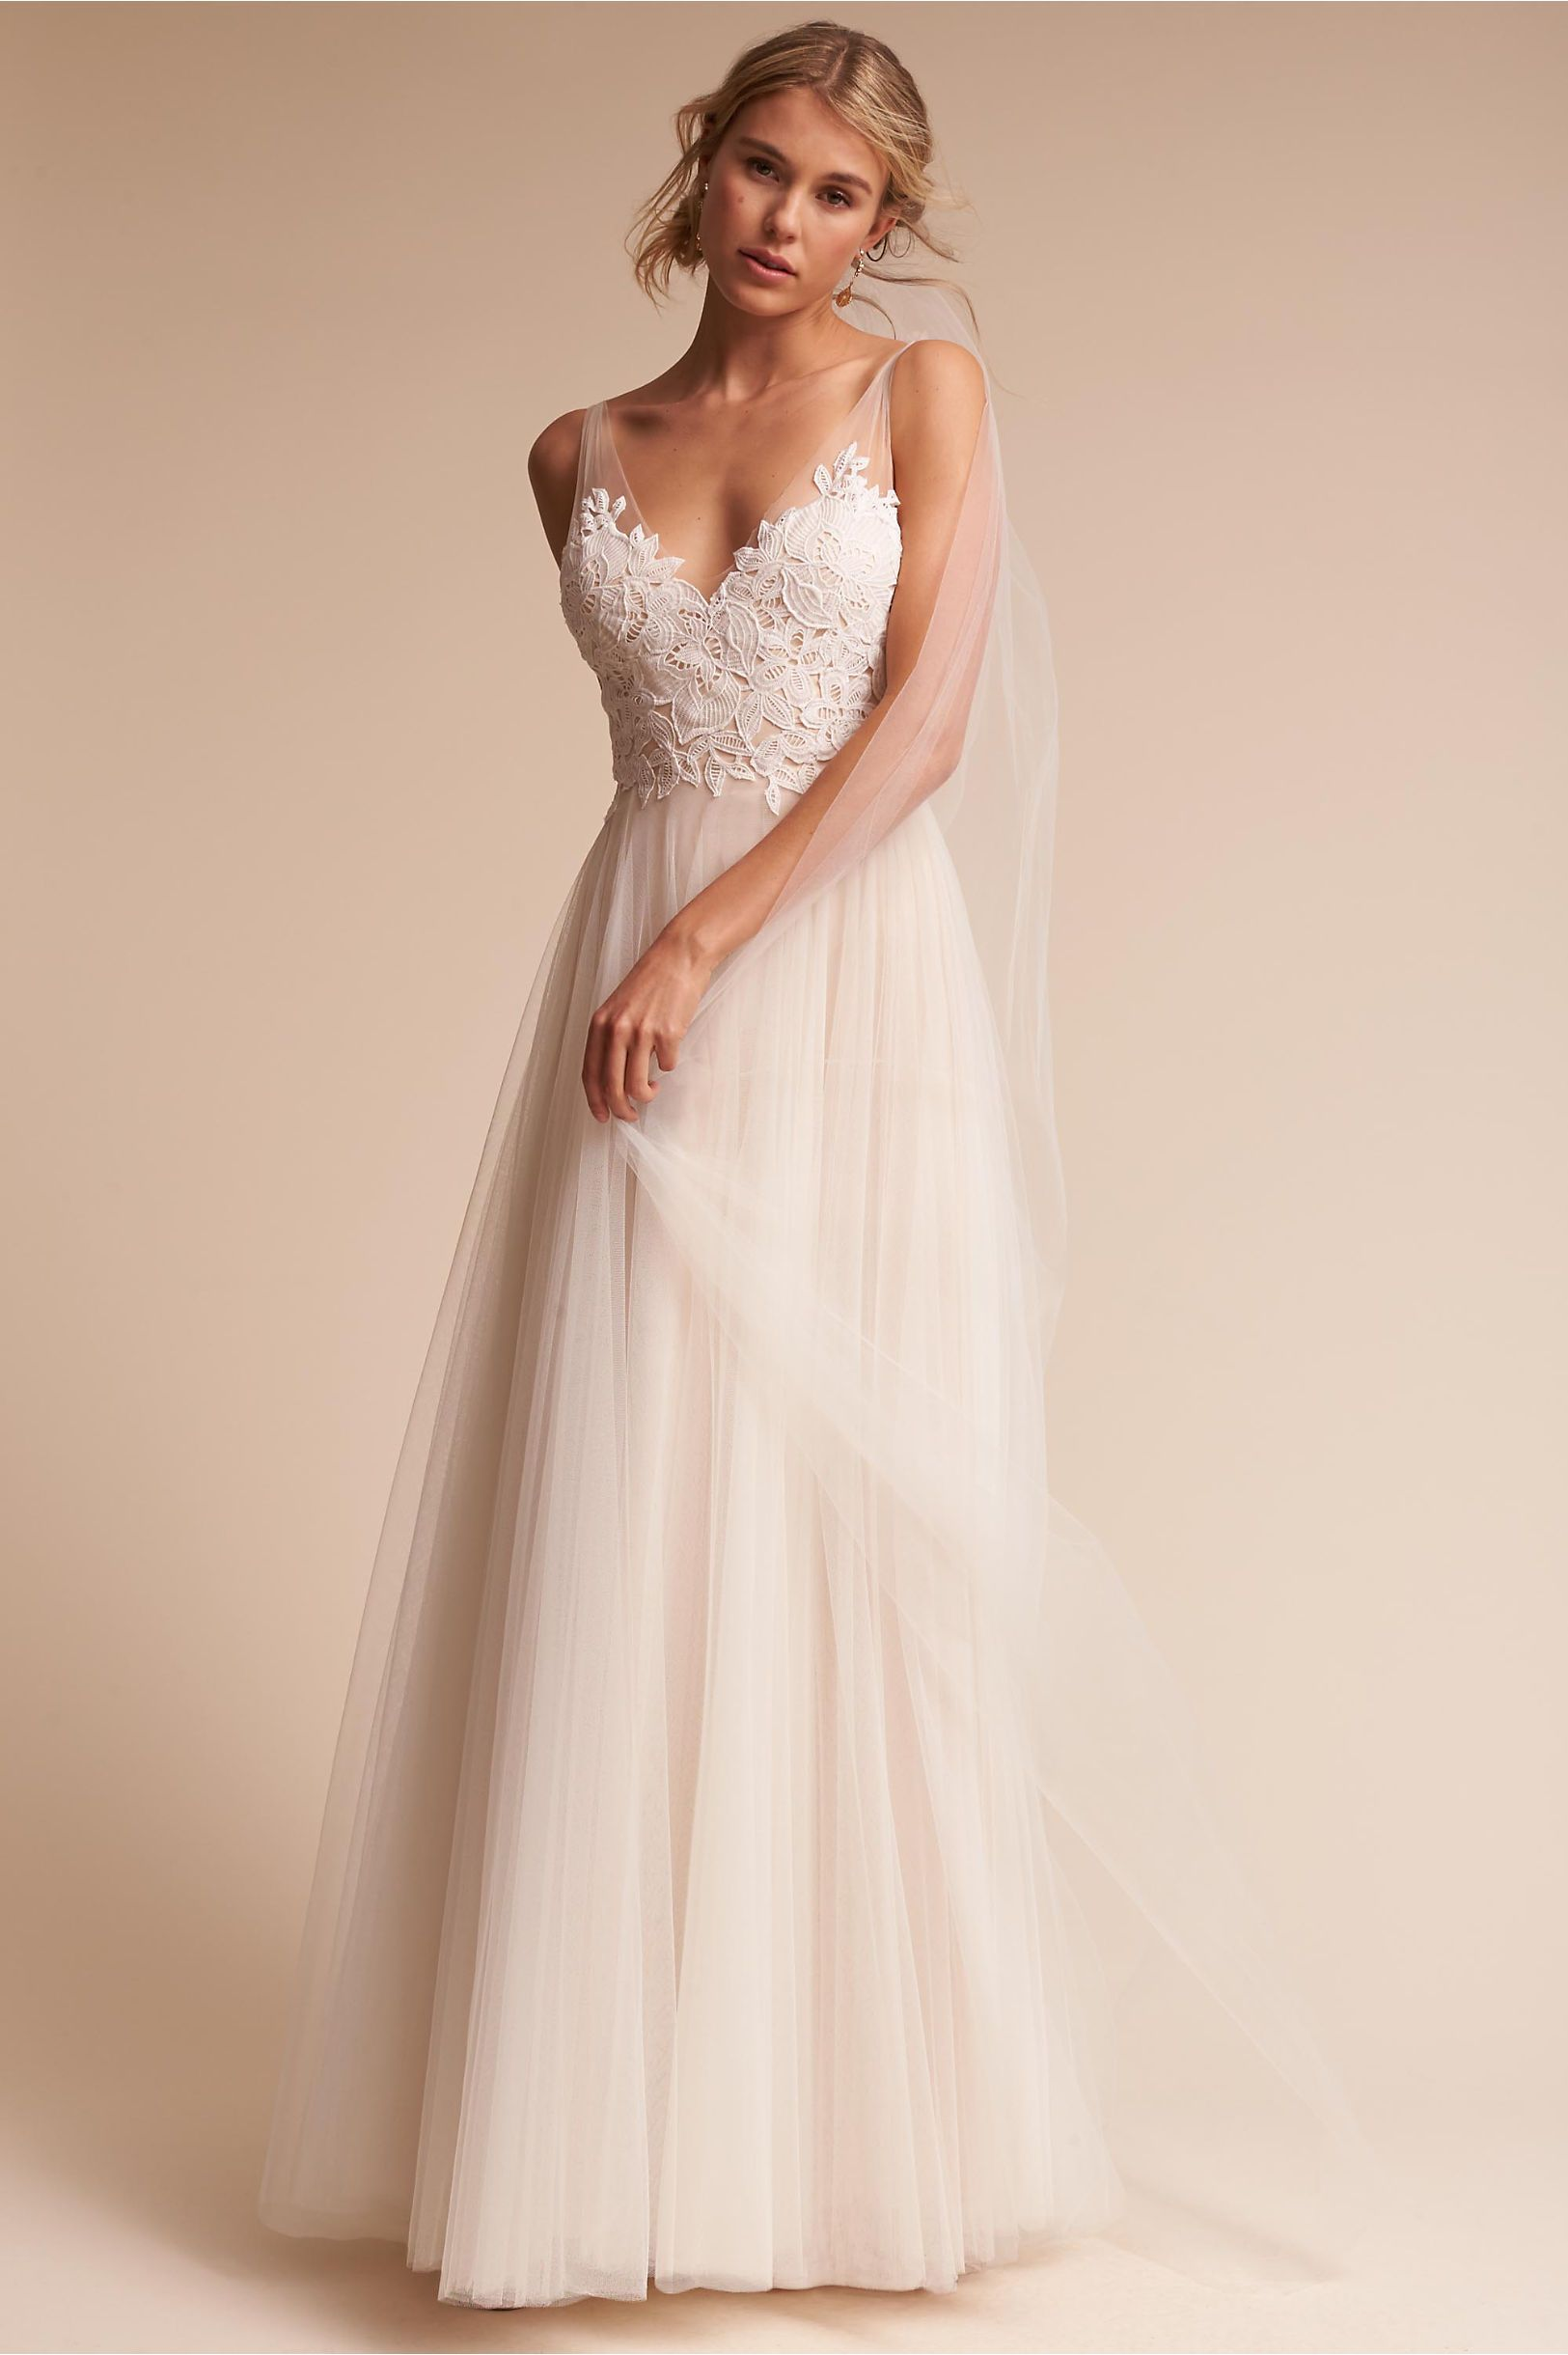 aa76d03e45c BHLDN s Watters Heritage Gown in Ivory champagne. BHLDN Ivory Champagne  Heritage Gown in Bride